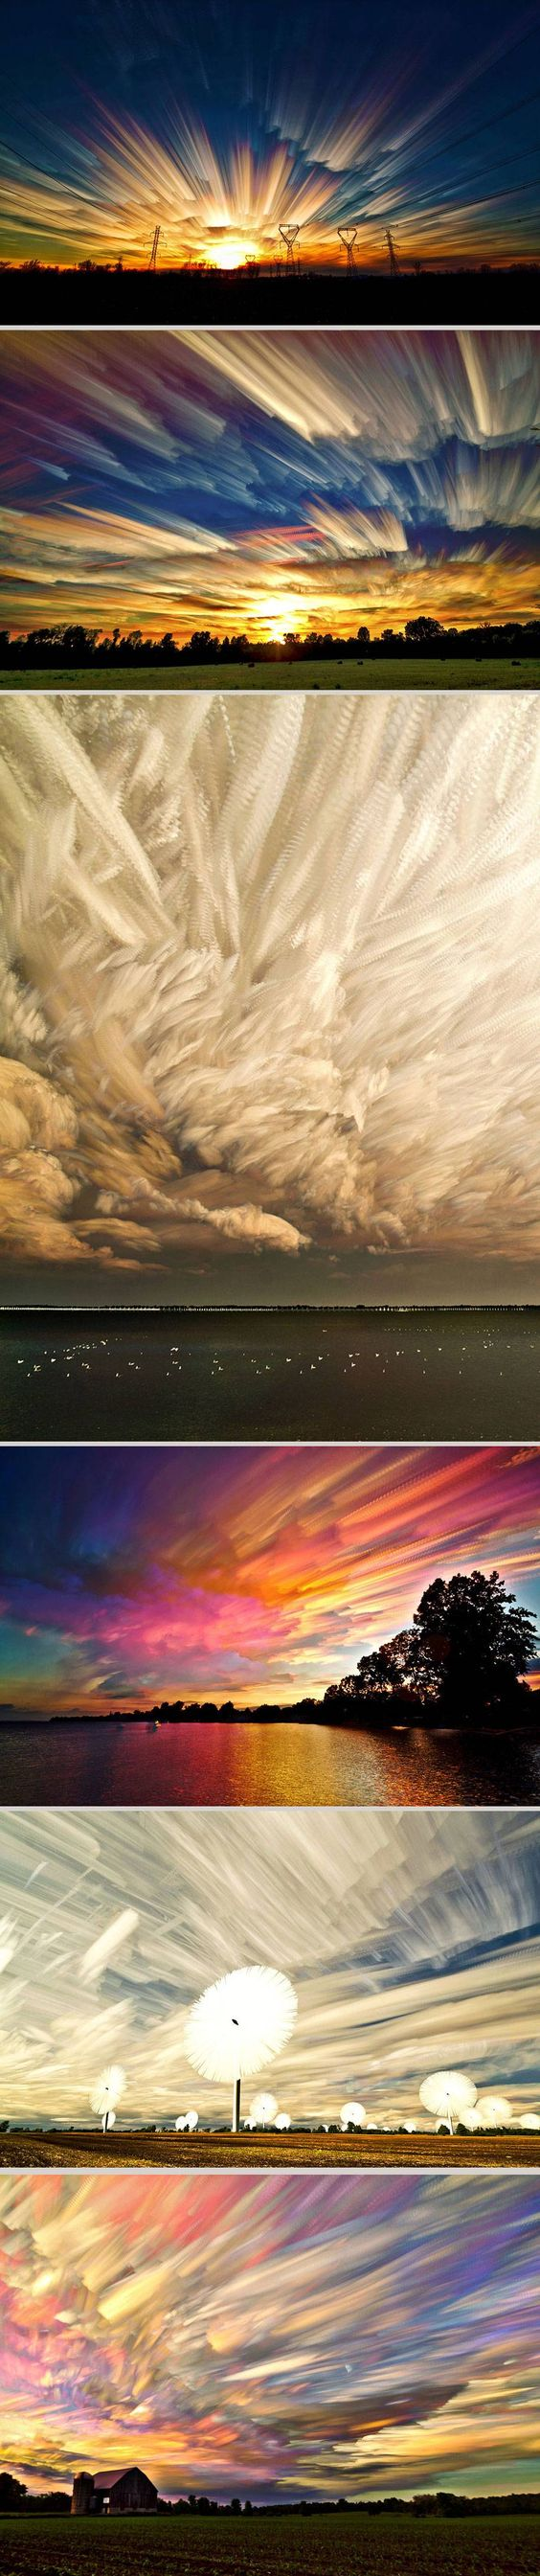 """Canada-based photographer Matt Molloy brings sky photography to a new level. By stacking hundreds of separate sky shots he is able to achieve an incredible brush-like effect. Each final picture in his """"Smeared Sky"""" series is a result of combining from 100 to 200 photographs."""